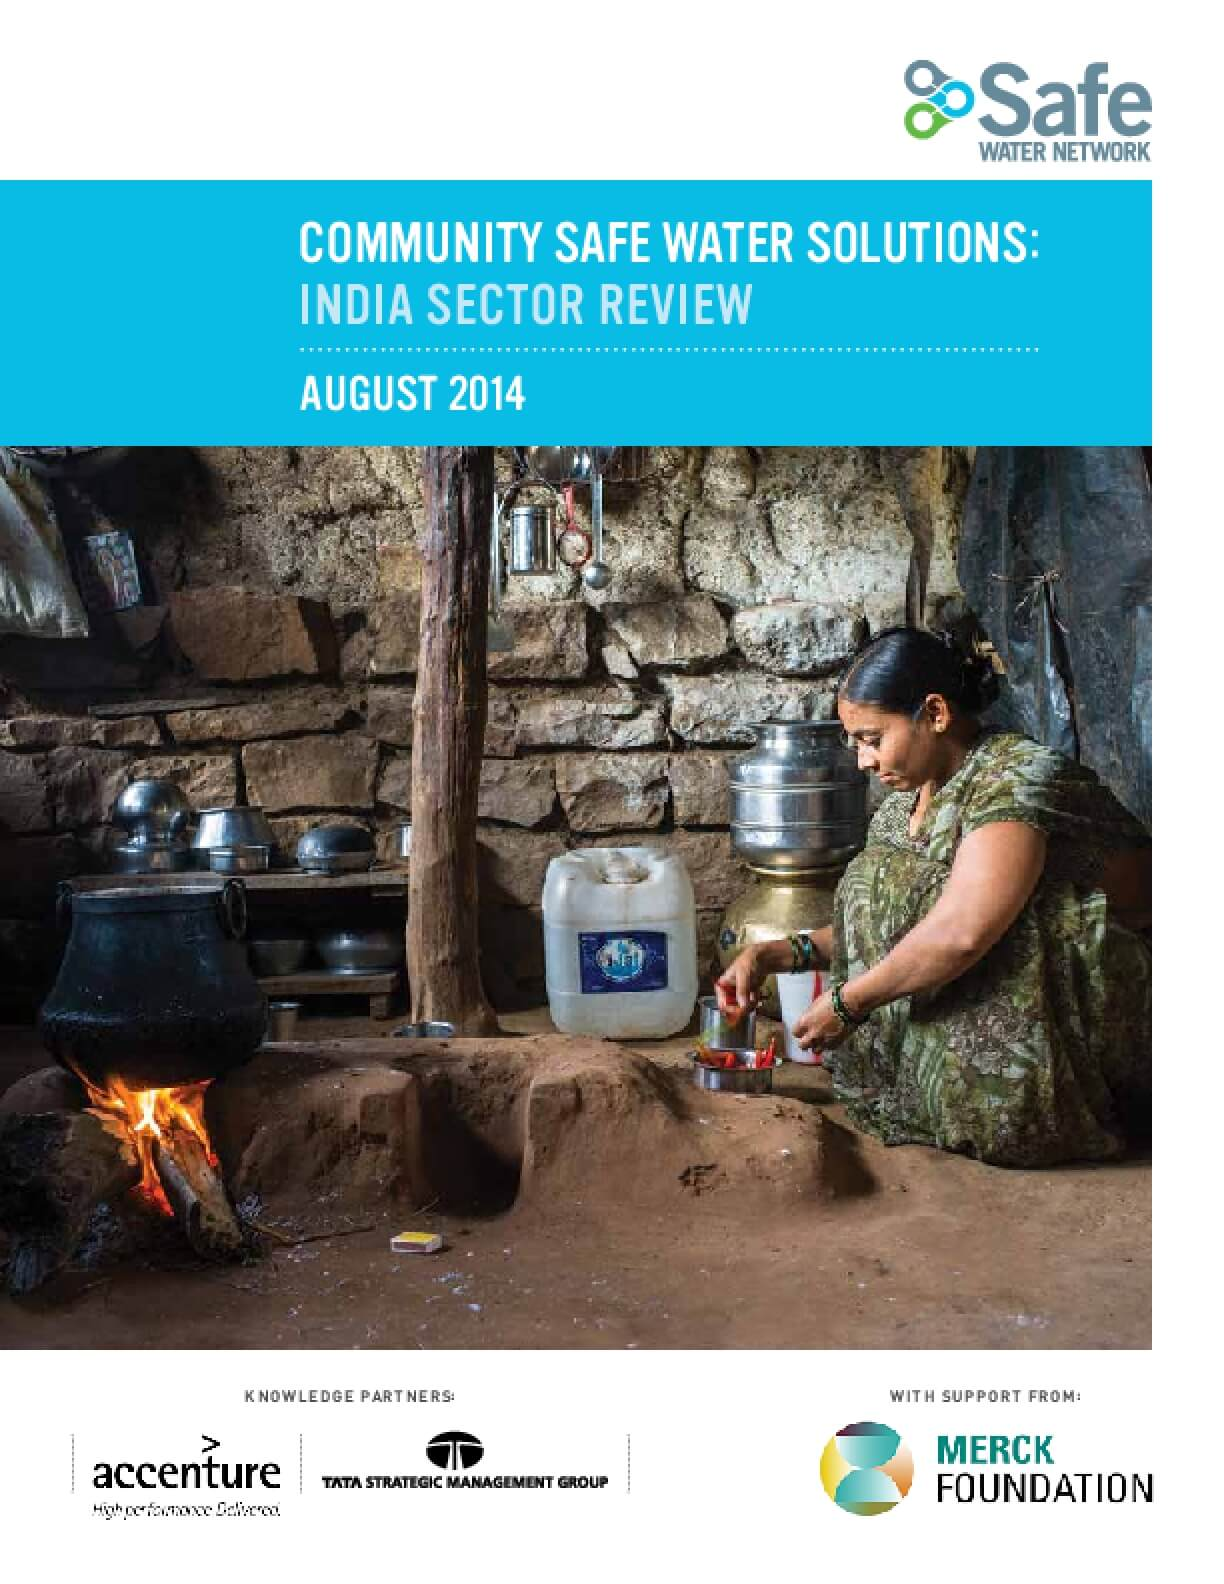 Community Safe Water Solutions: India Sector Review